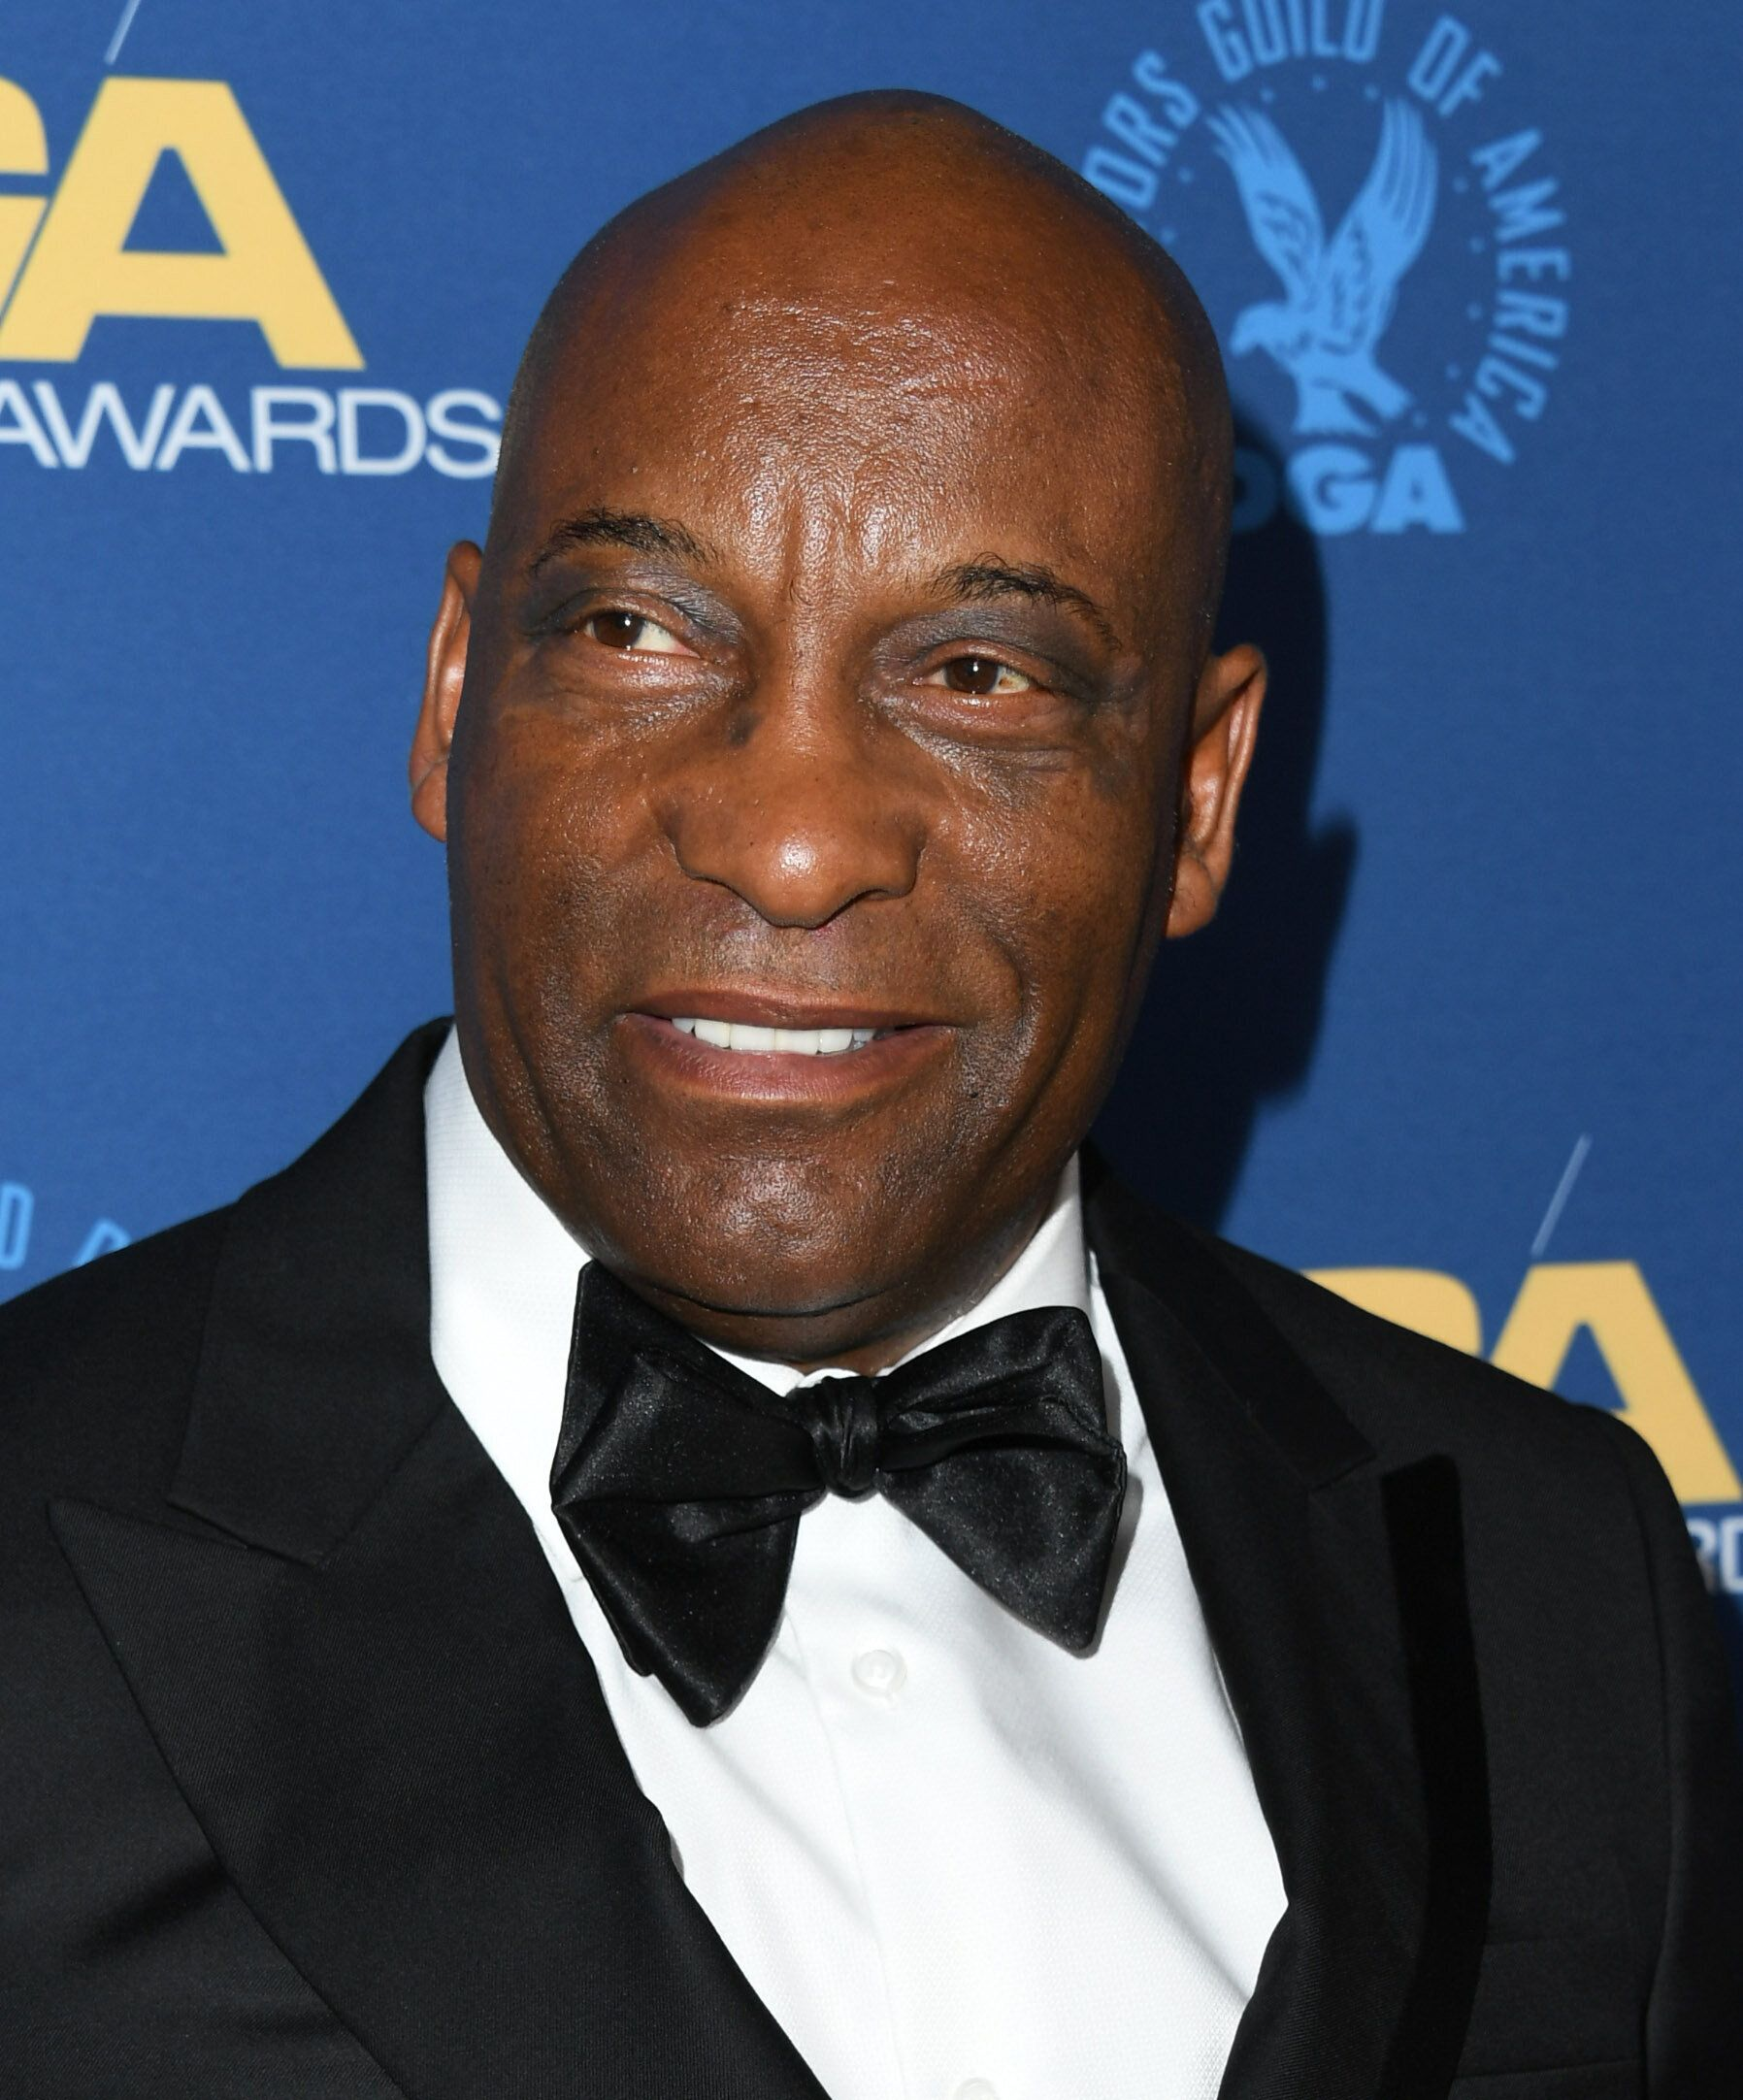 HOLLYWOOD, CALIFORNIA - FEBRUARY 02:  John Singleton attends the 71st Annual Directors Guild Of America Awards at The Ray Dolby Ballroom at Hollywood & Highland Center on February 02, 2019 in Hollywood, California. (Photo by Jon Kopaloff/FilmMagic)